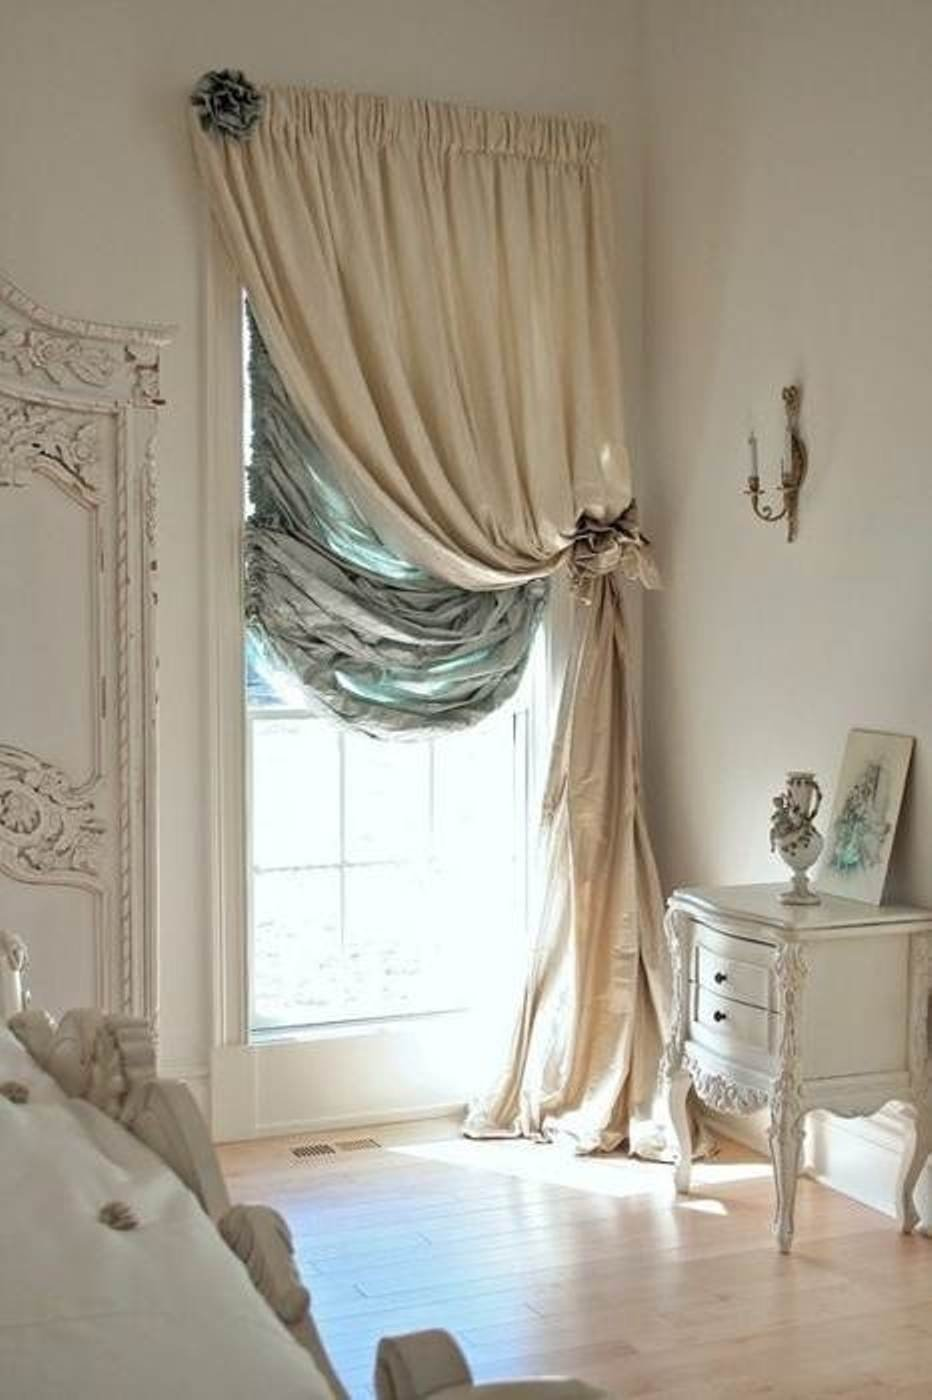 10 Perfect Window Treatment Ideas For Small Windows perfect bedroom curtains for small windows gallery 3710 2020